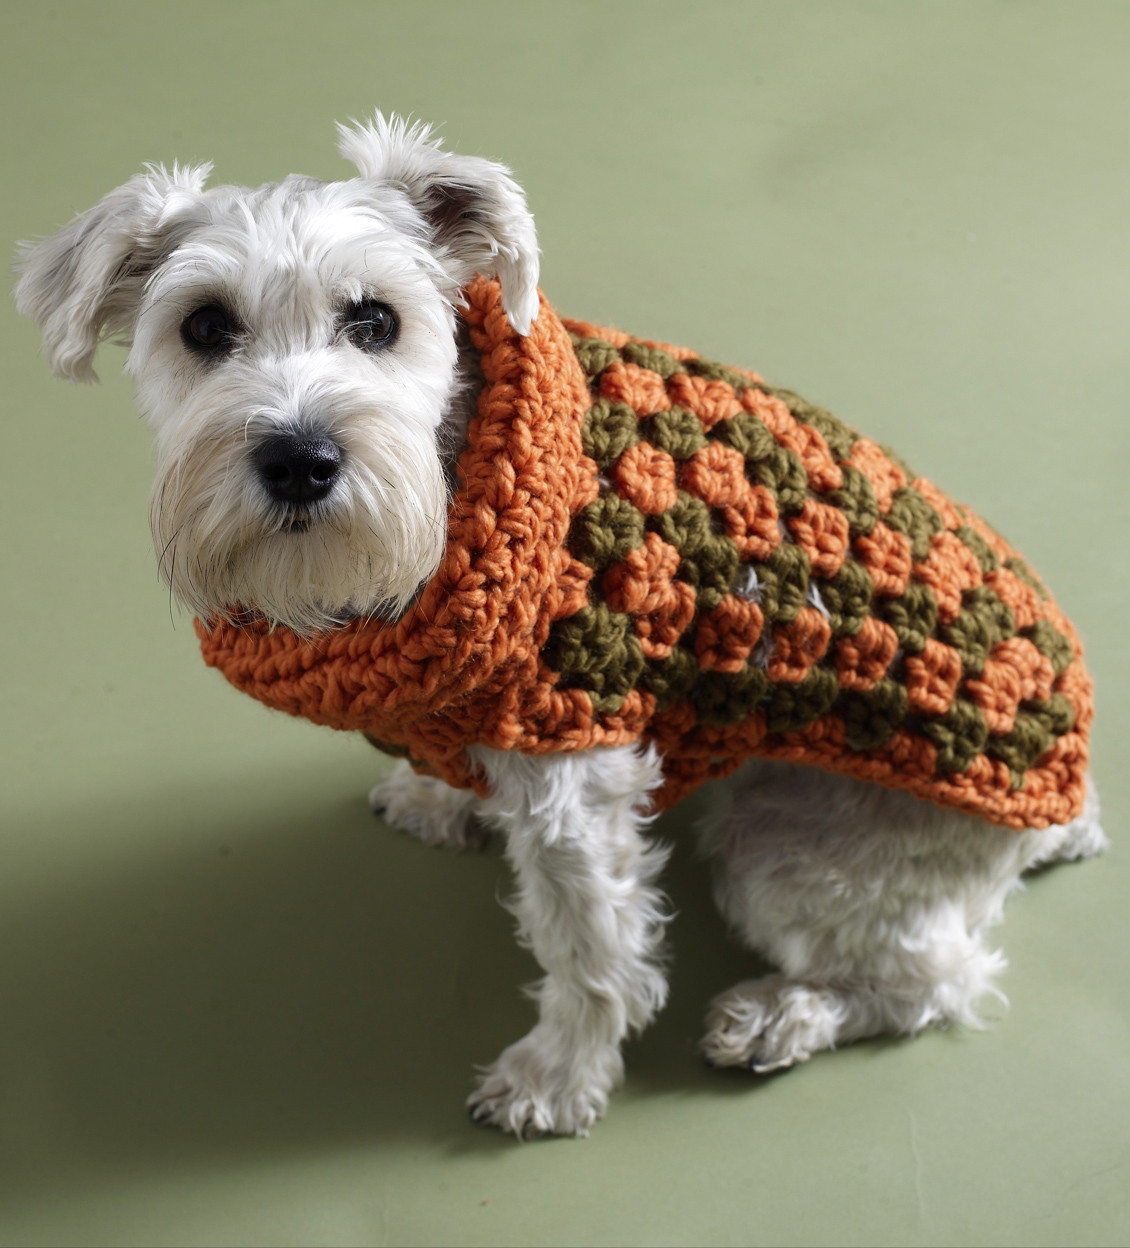 Dog Sweater Patterns Awesome Keep Your Dog Warm with A Crochet Dog Sweater Crochet Of Unique 41 Photos Dog Sweater Patterns